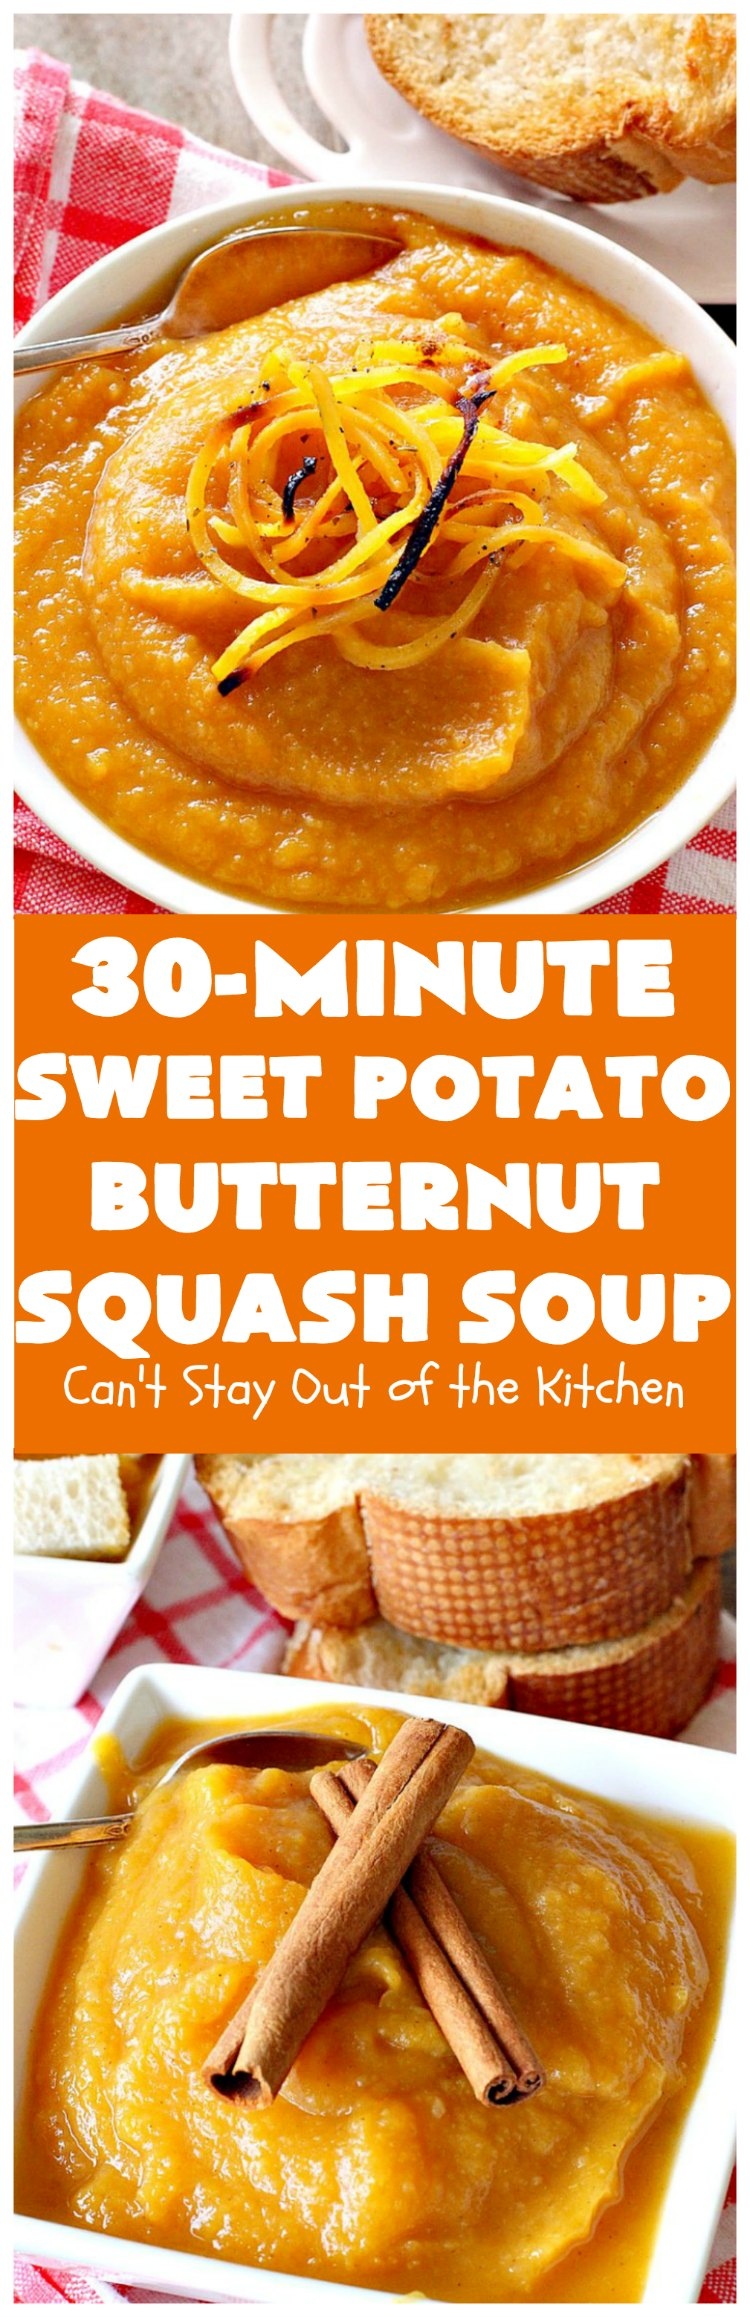 Sweet Potato Butternut Squash Soup | Can't Stay Out of the Kitchen | this delectable 30-minute #soup is amazing comfort food. It's terrific for cold, winter days. It's healthy, #glutenfree & #vegan. #apples #butternutsquash #sweetpotatoes